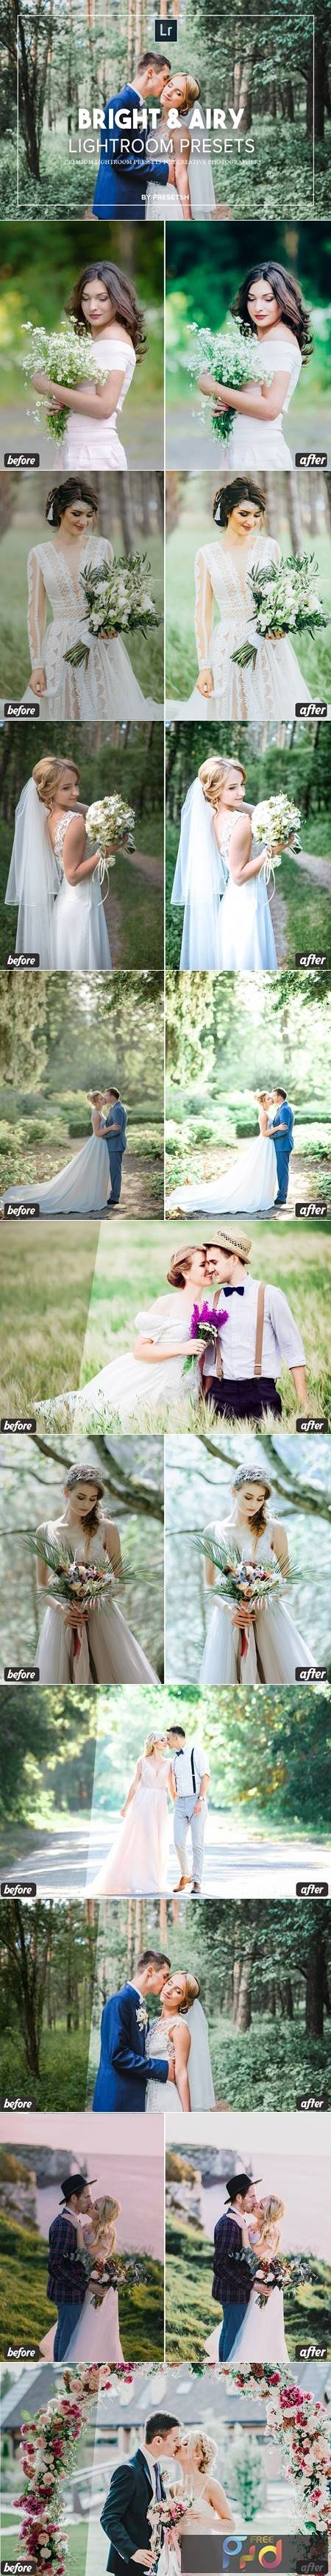 Bright & Airy Lightroom Presets 5125162 1